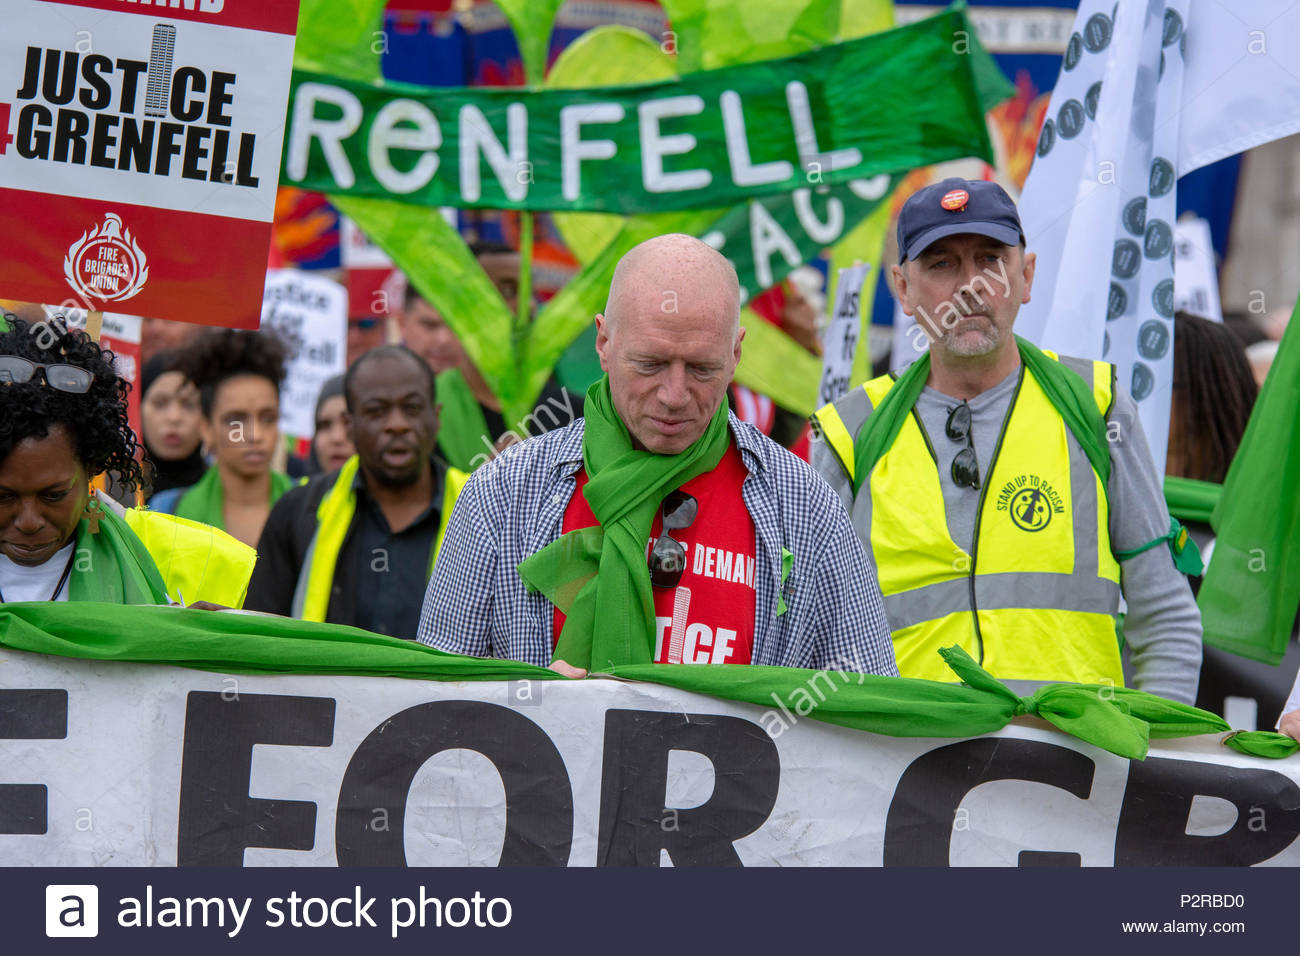 London, Great Britain, 16 Jun 2018 Justice4Grenfell and the FBU organise a march calling for justice for those killed and the survivors of the Grenfell Tower. Credit: David Nash/Alamy Live News - Stock Image